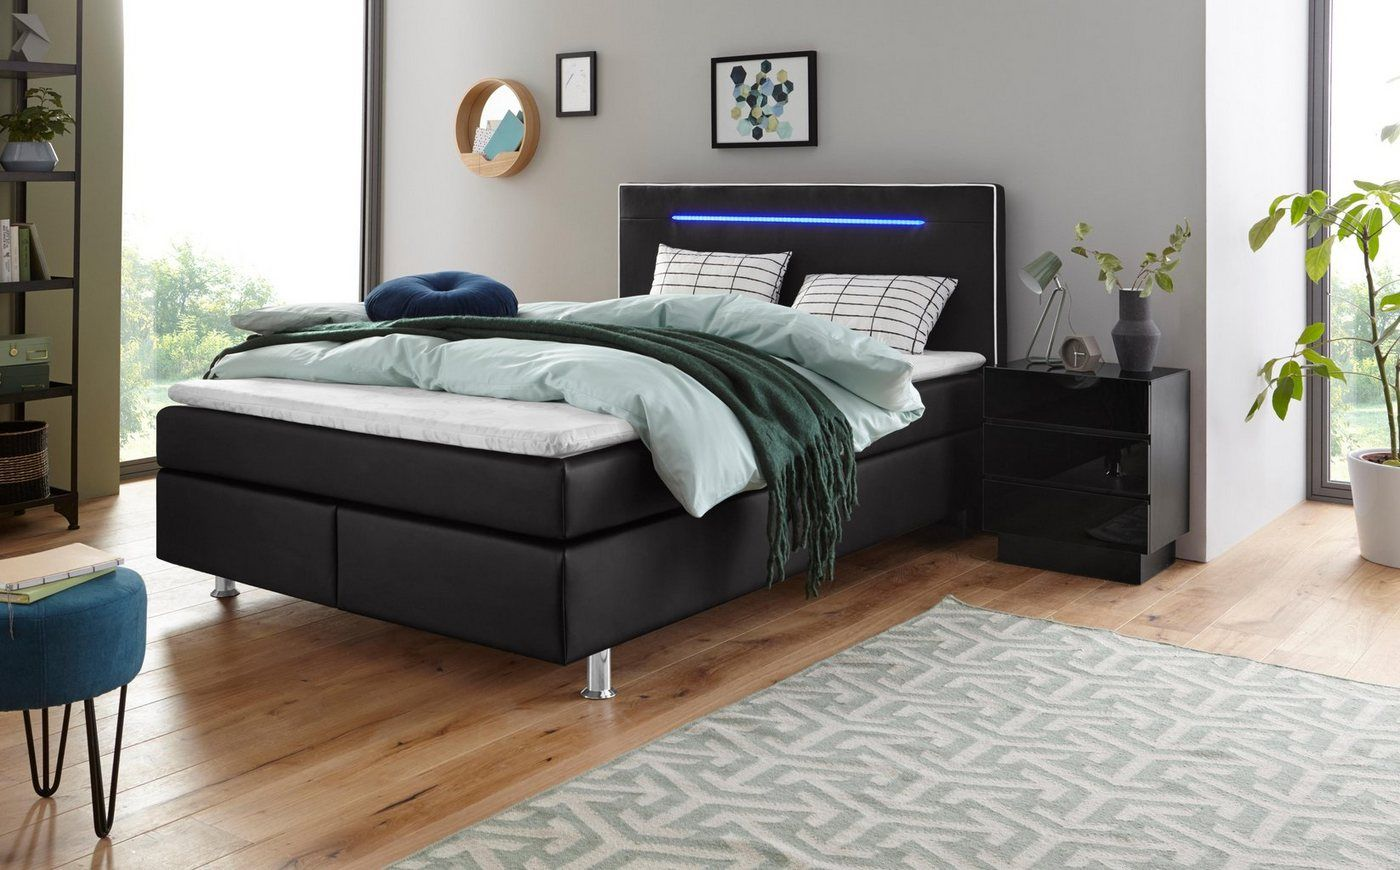 Collection Ab Boxspringbett Inkl Led Beleuchtung Topper Und